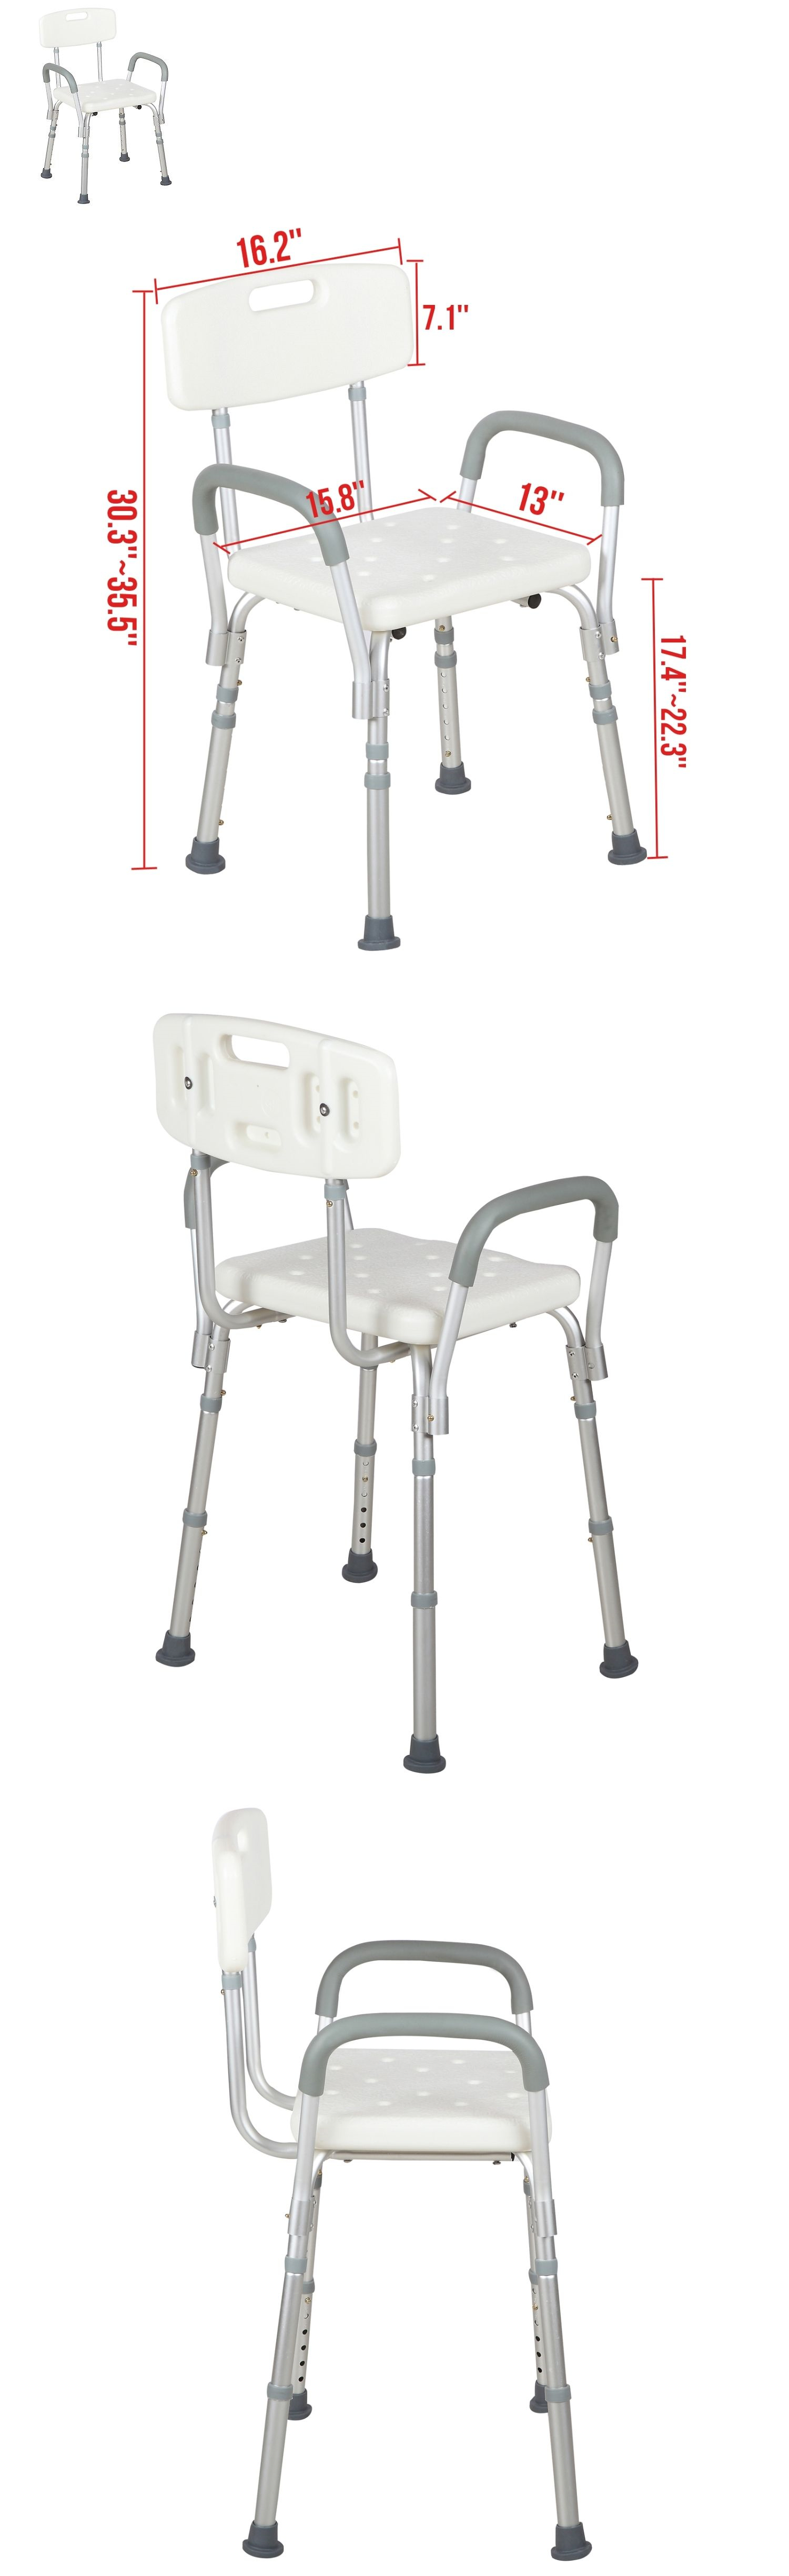 Shower and Bath Seats: Medical Shower Bath Chair Adjustable Bench ...